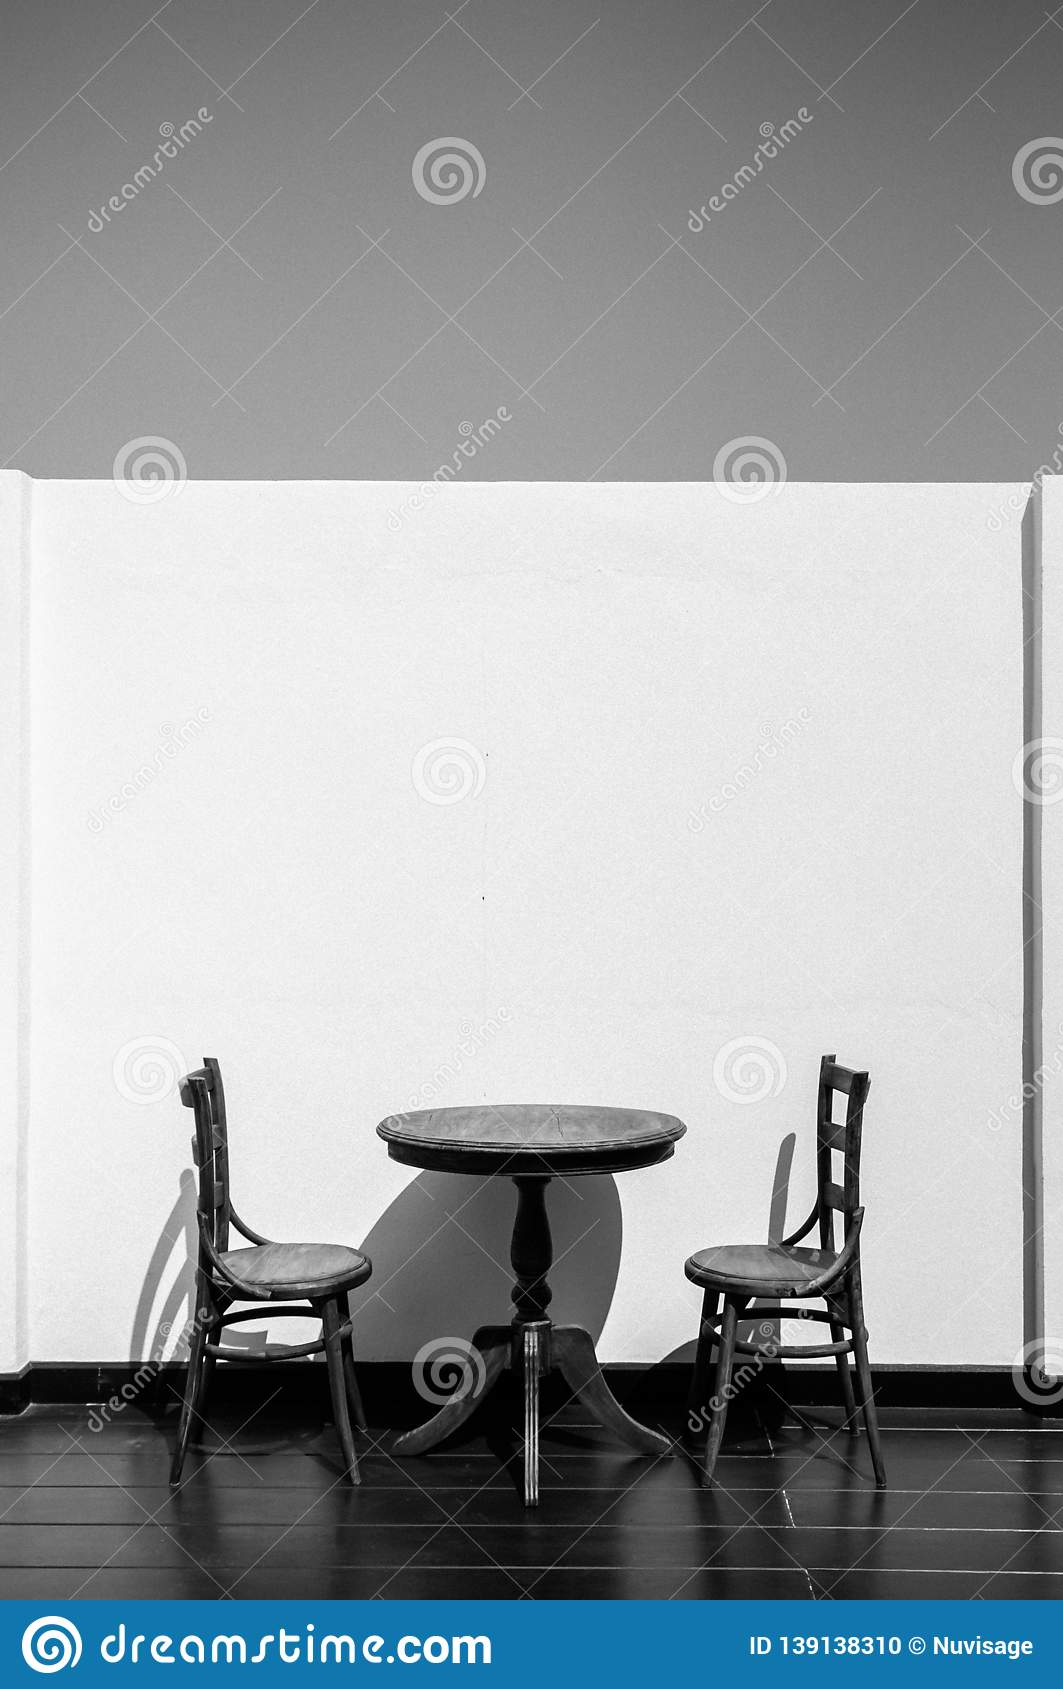 Vintage Wooden Dining Table And Chairs At Outdoor Balcony Stock Photo Image Of Furniture Seat 139138310